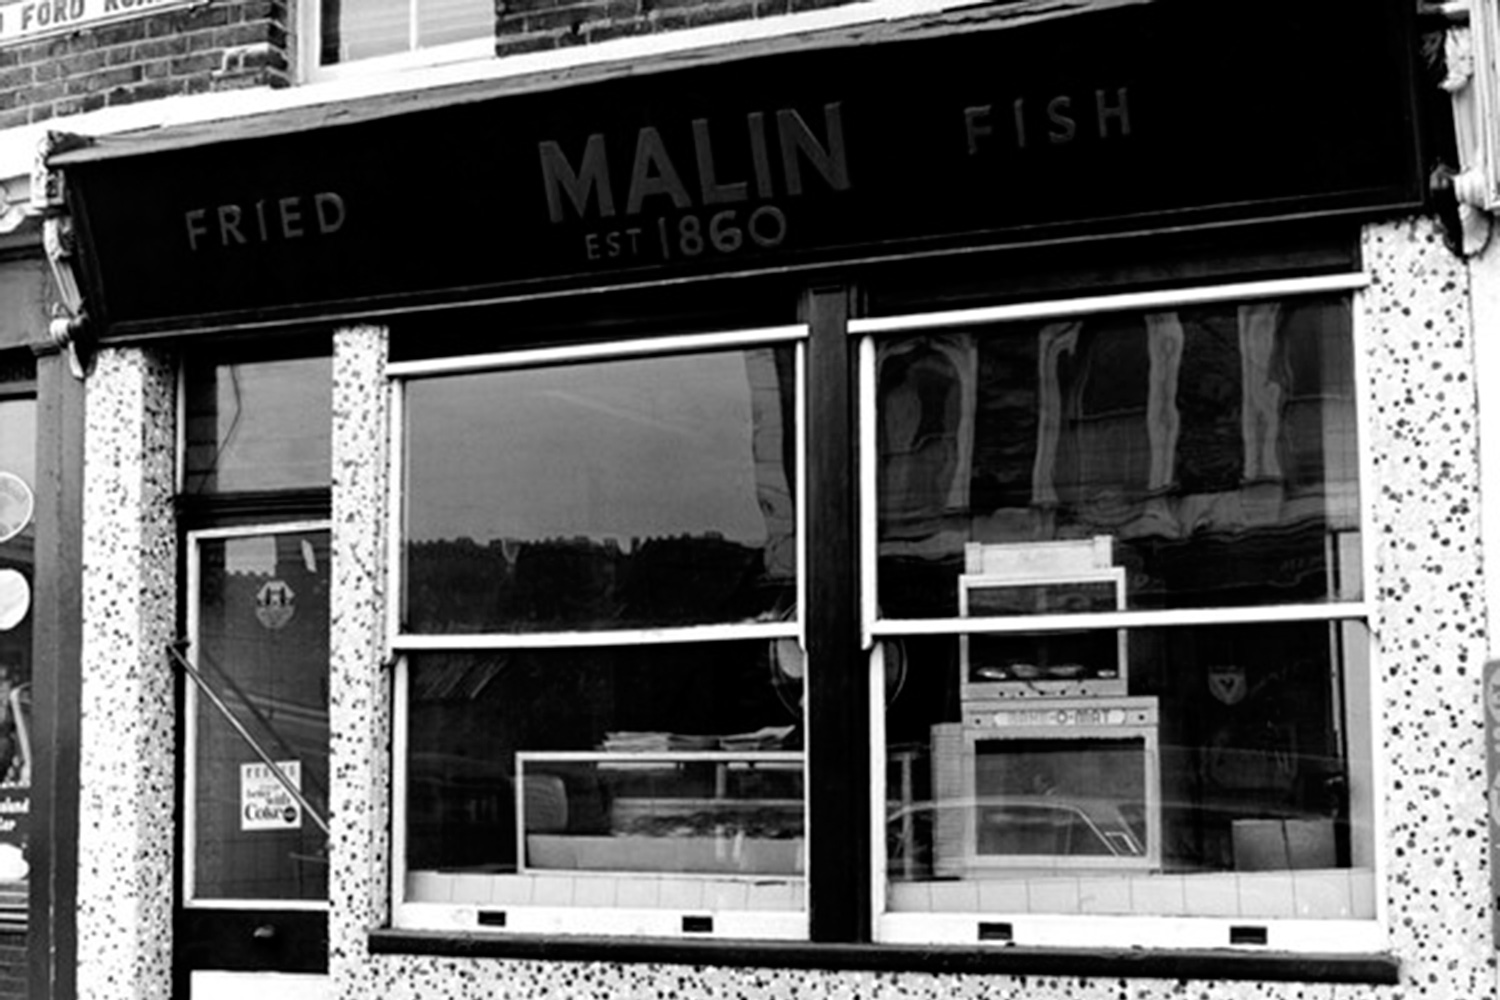 Malin's in Bow: the first fish and chip shop in the UK | Roman Road LDN